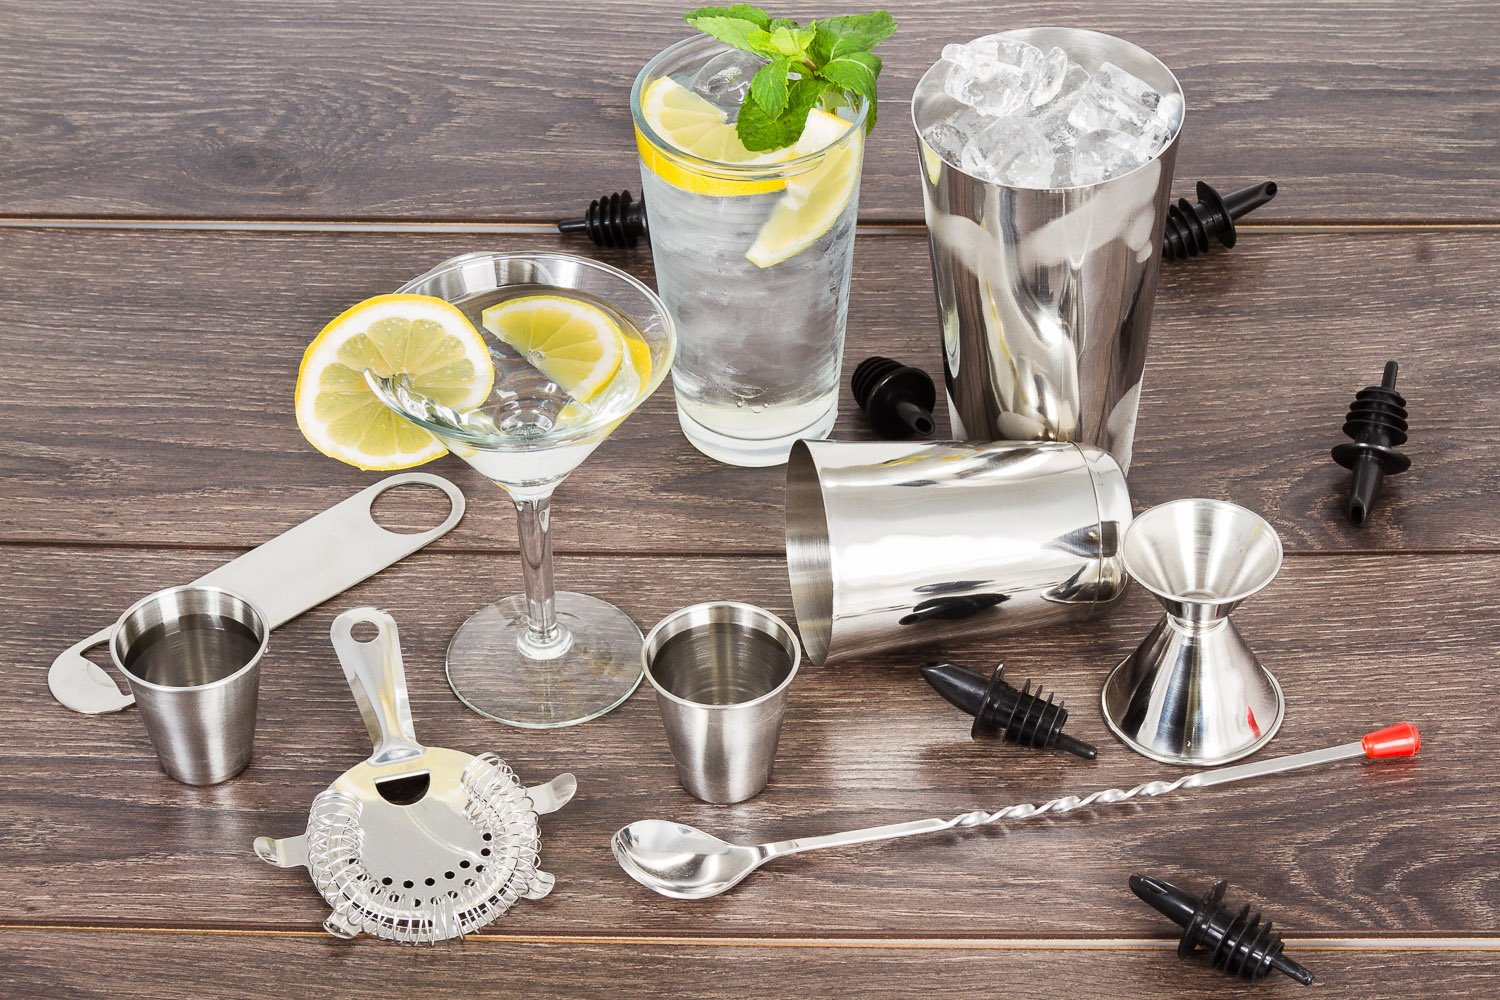 16 Pcs Cocktail Shaker Home Bar Set – Complete Bartender Kit with Double Bar Jigger, Pour Spouts, Drink Shaker, Hawthorne Strainer, Bar Spoon, Bottle Opener and Tin Shot Glasses by Lexi Home (Image #6)